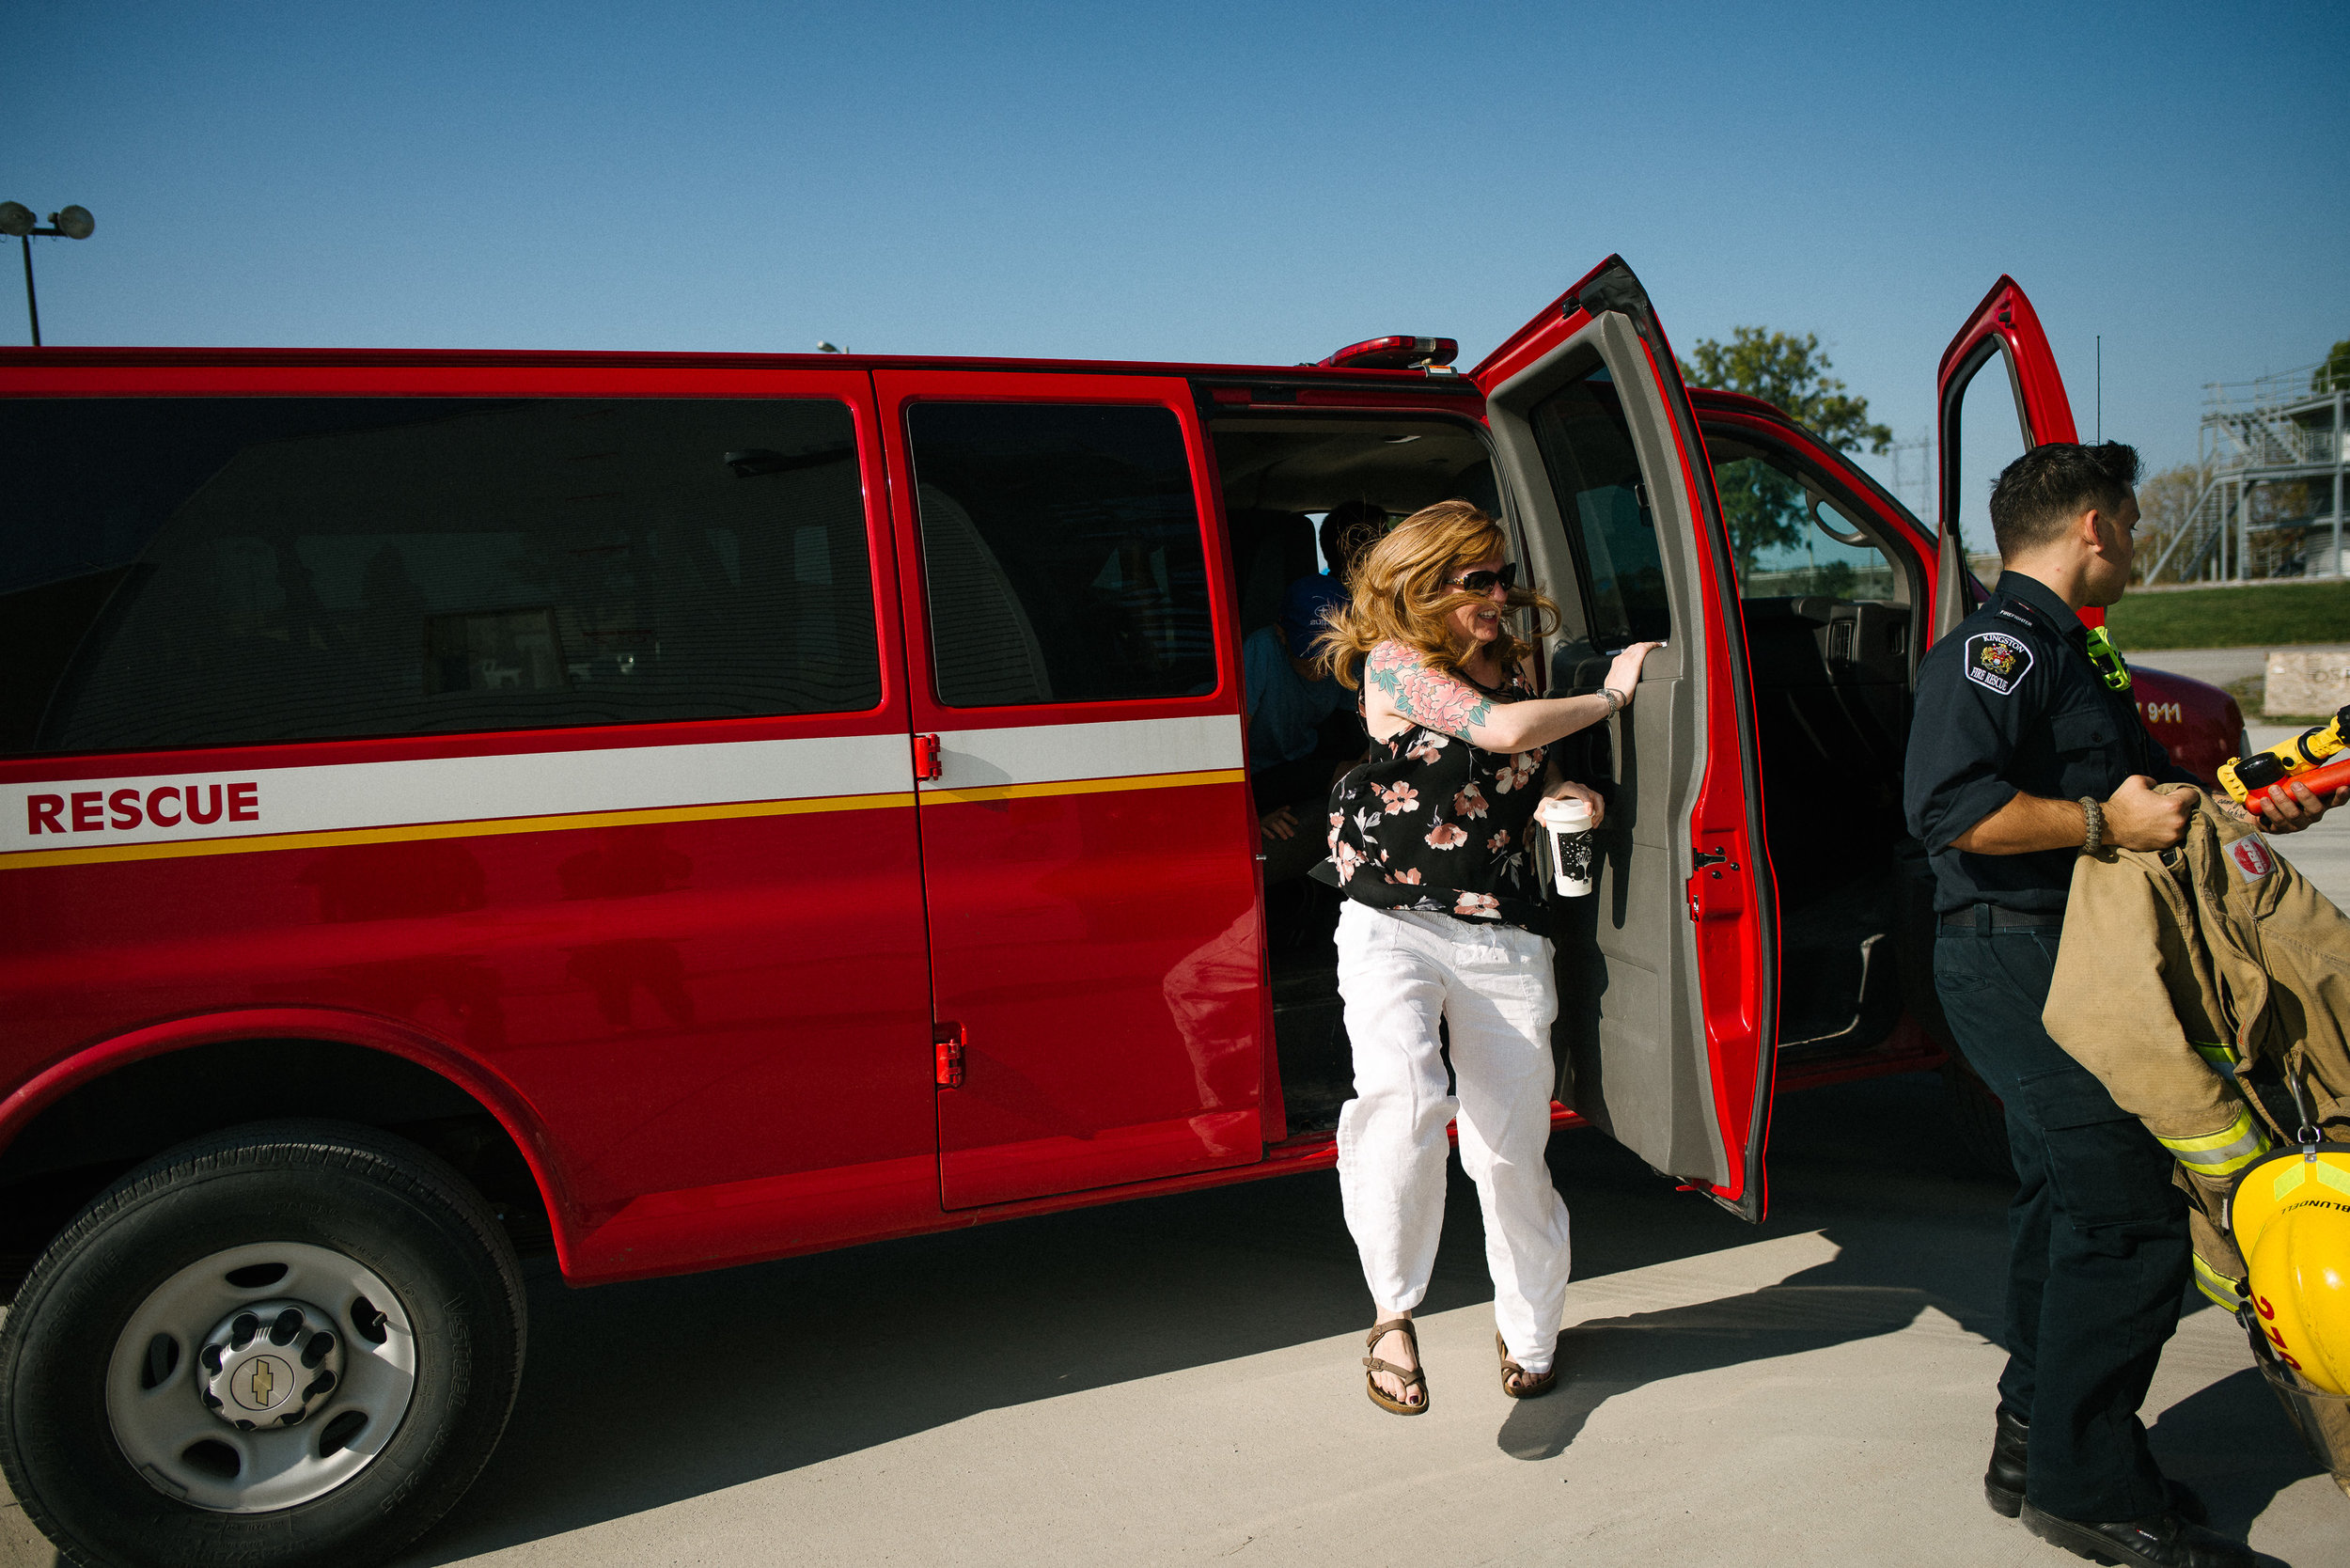 fire engine red family documentary photography-170923100726vm.jpg